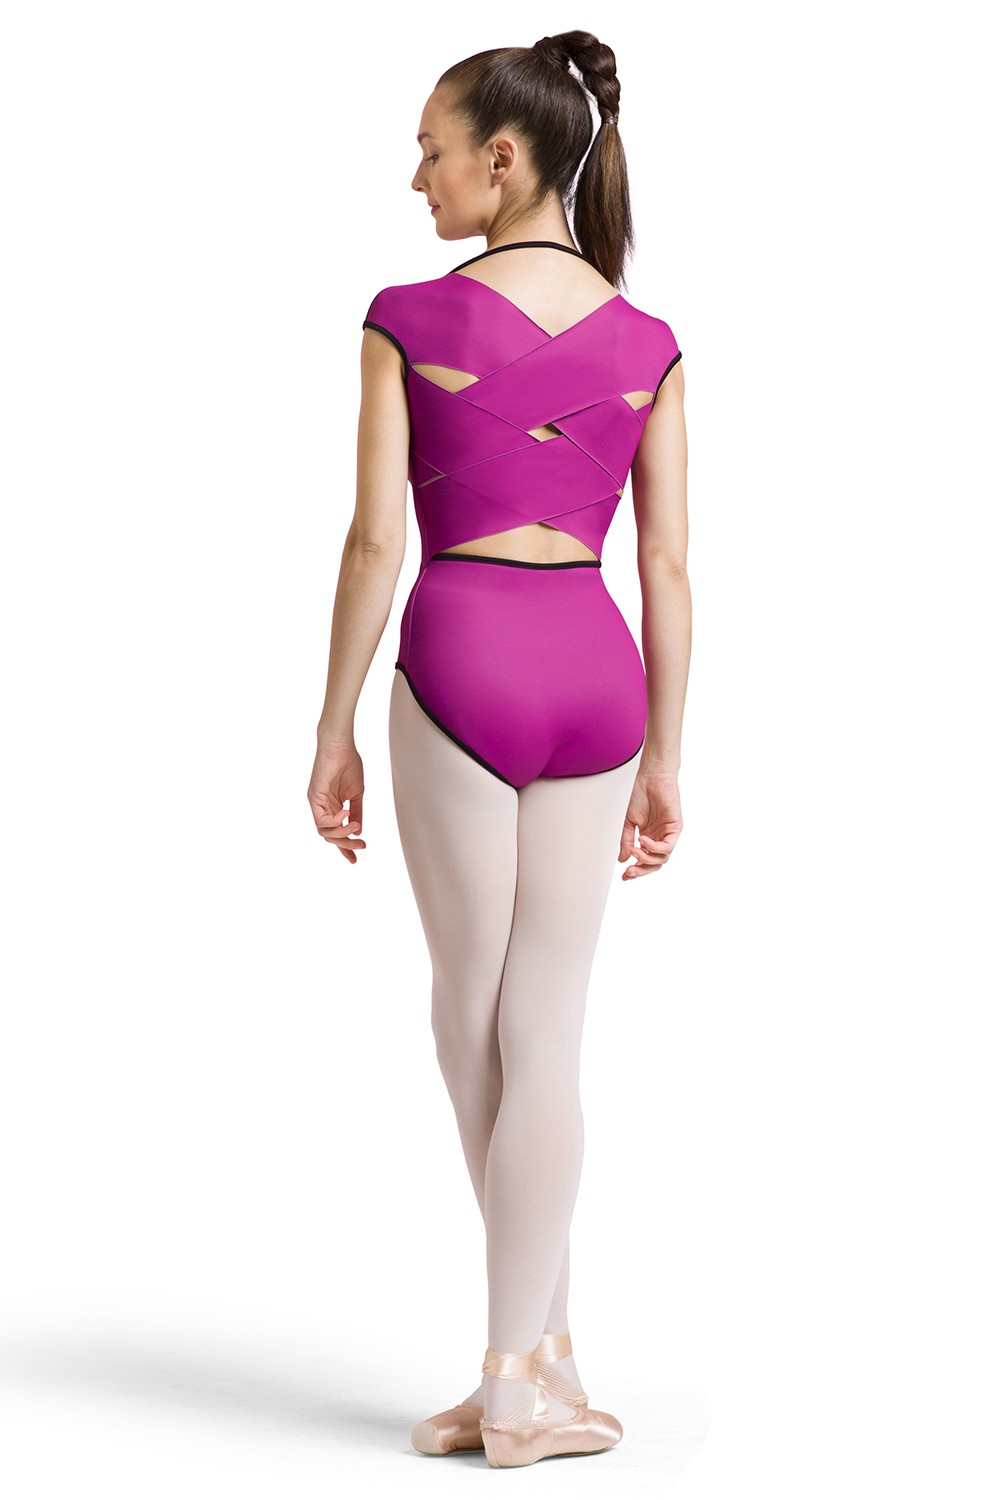 Daan   Women's Dance Leotards